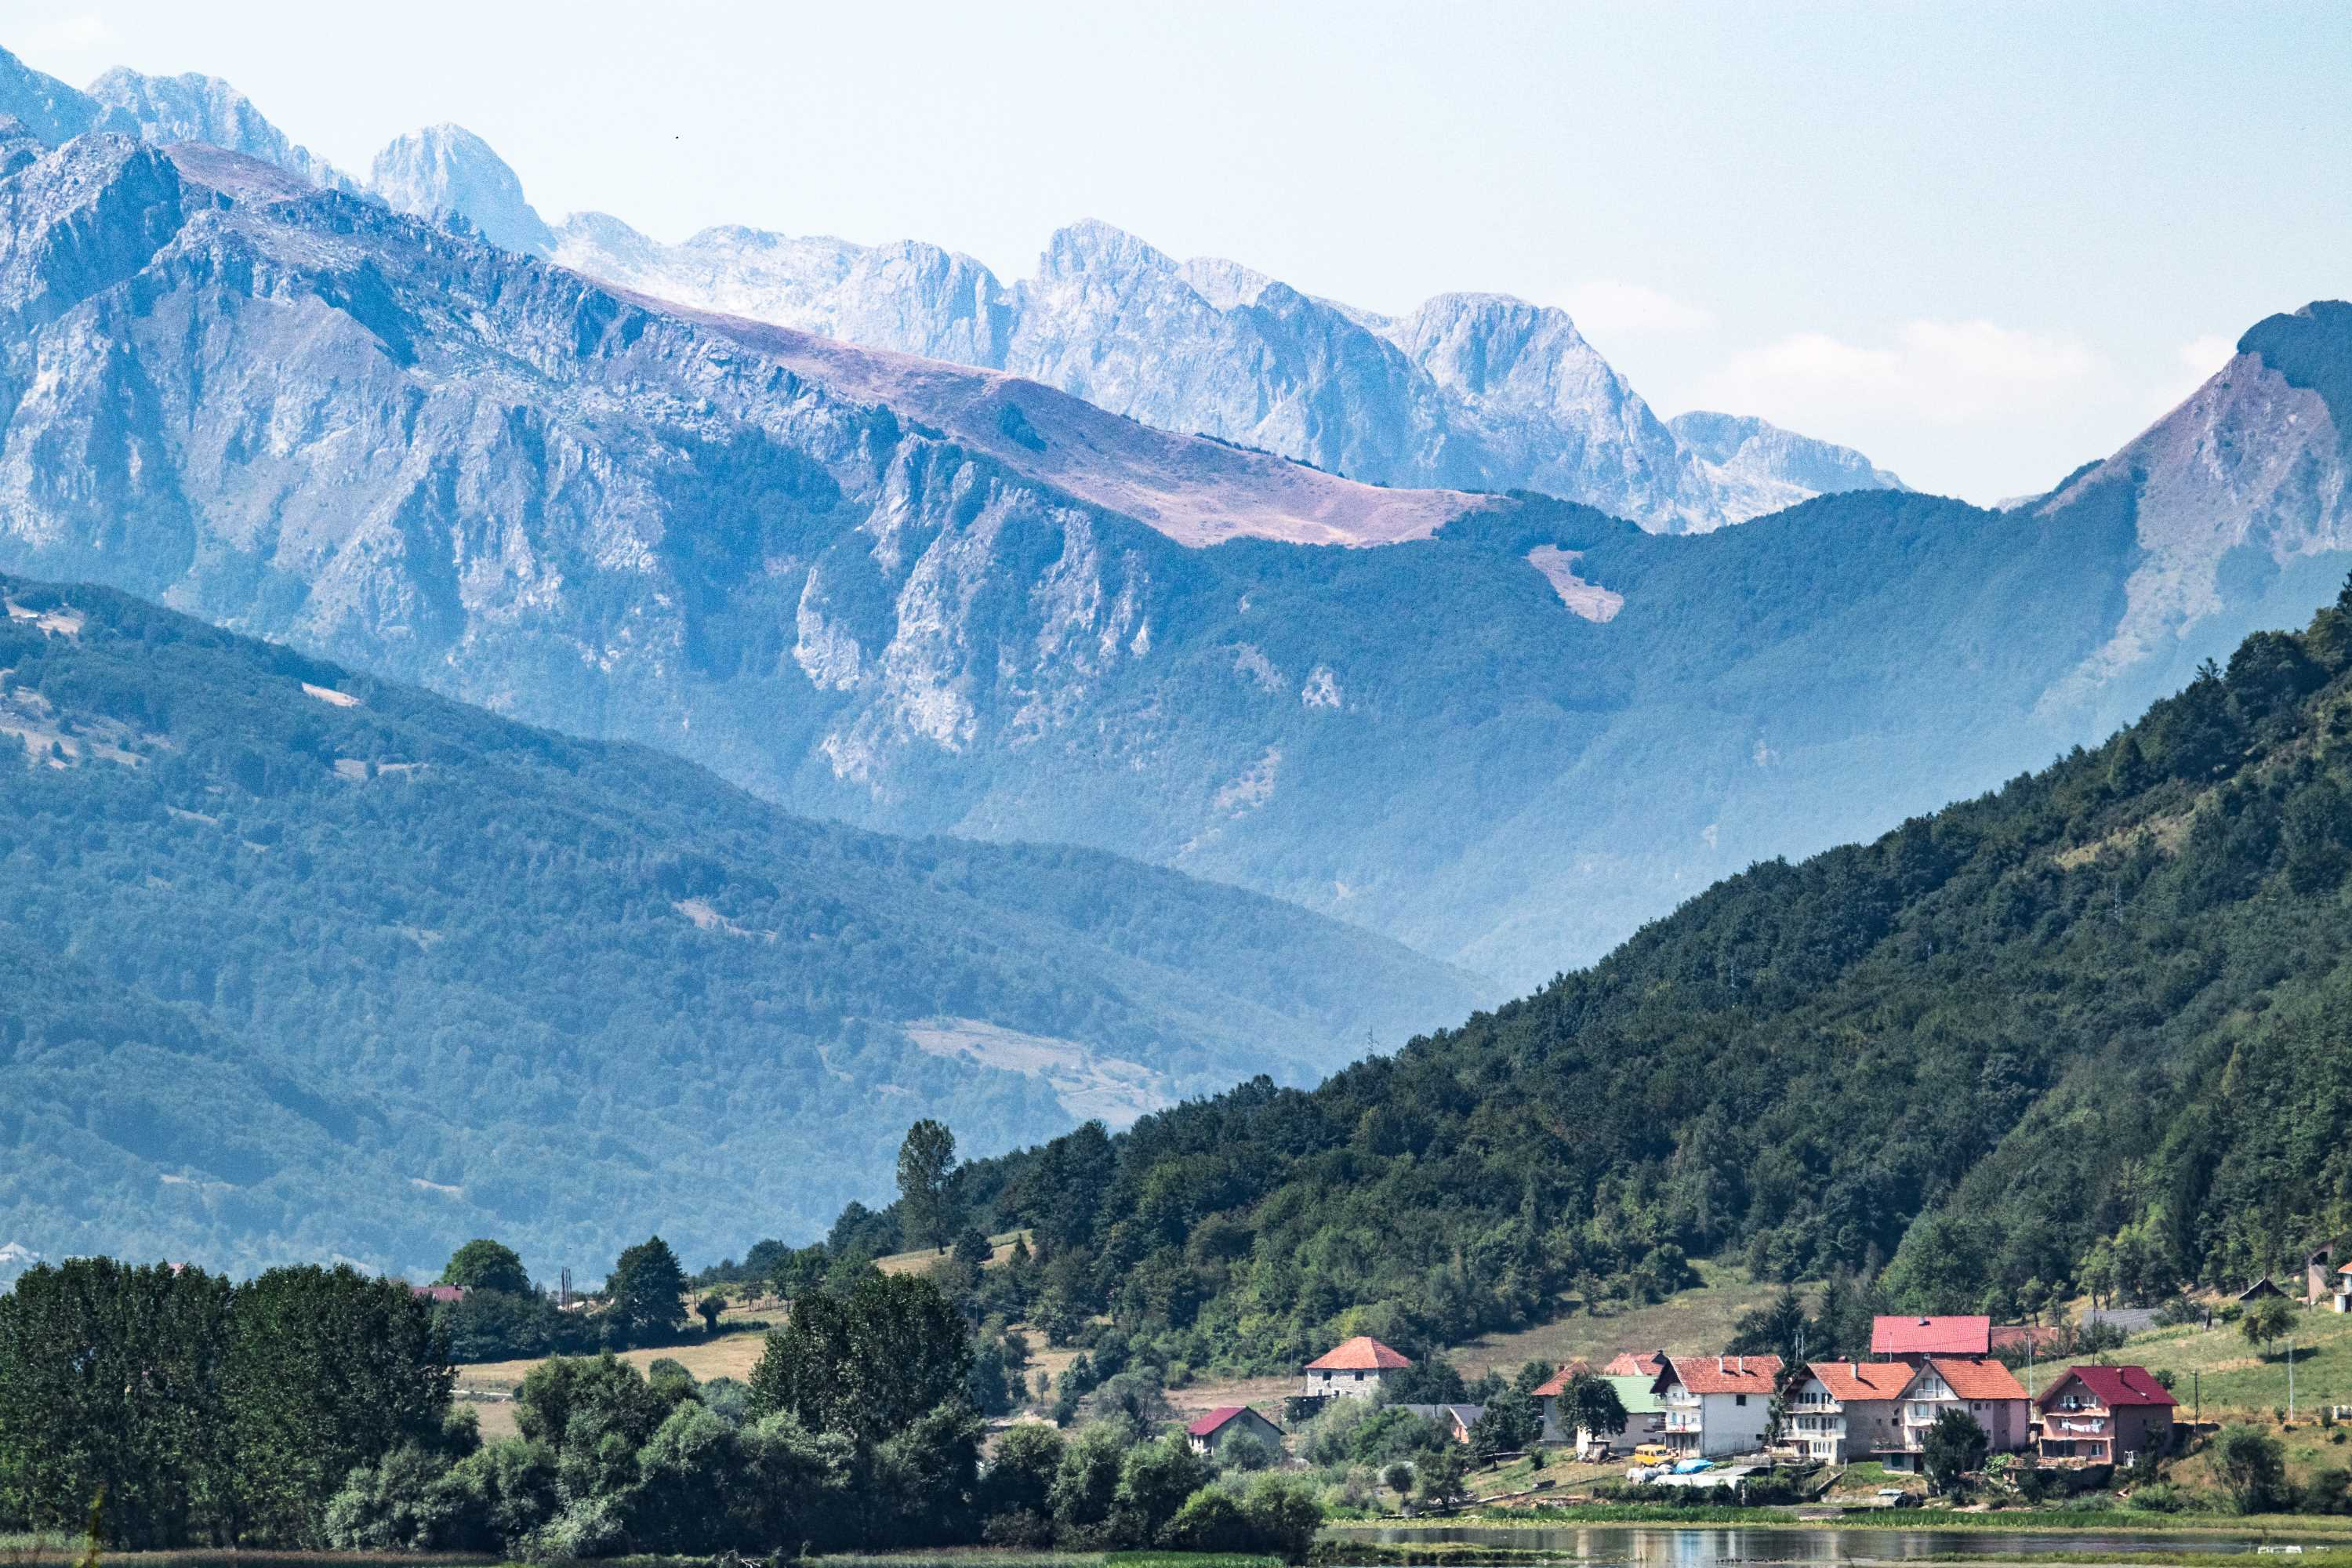 In the foothills of Montenegro's dramatic mountains